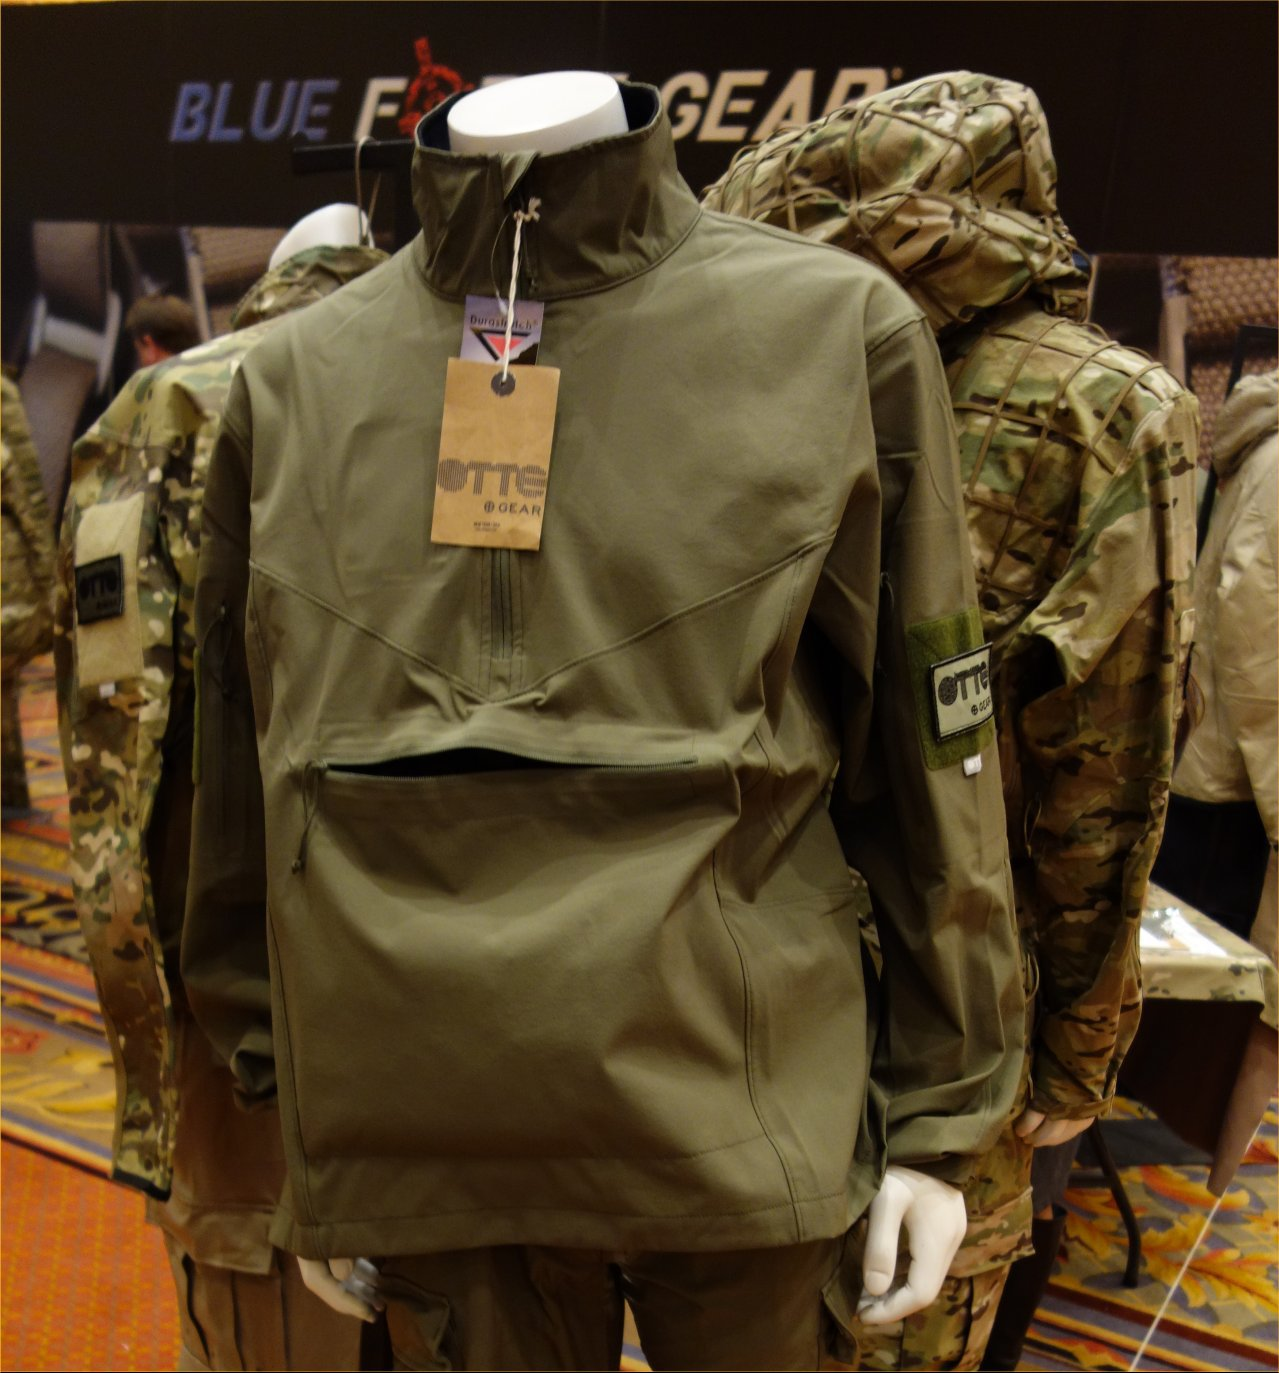 Otte Gear Sentinel Anorak Combat Jacket Tactical Jacket SHOT Show 2013 David Crane DefenseReview.com DR 1 Otte Gear (OG) Sentinel Anorak Softshell: High End Lightweight Pullover Combat/Tactical Jacket with Kangaroo Pouch for Lo Pro/Lo Vis Special Operations and Gunfighting with your Tactical Rifle/Carbine/SBR (Video!)